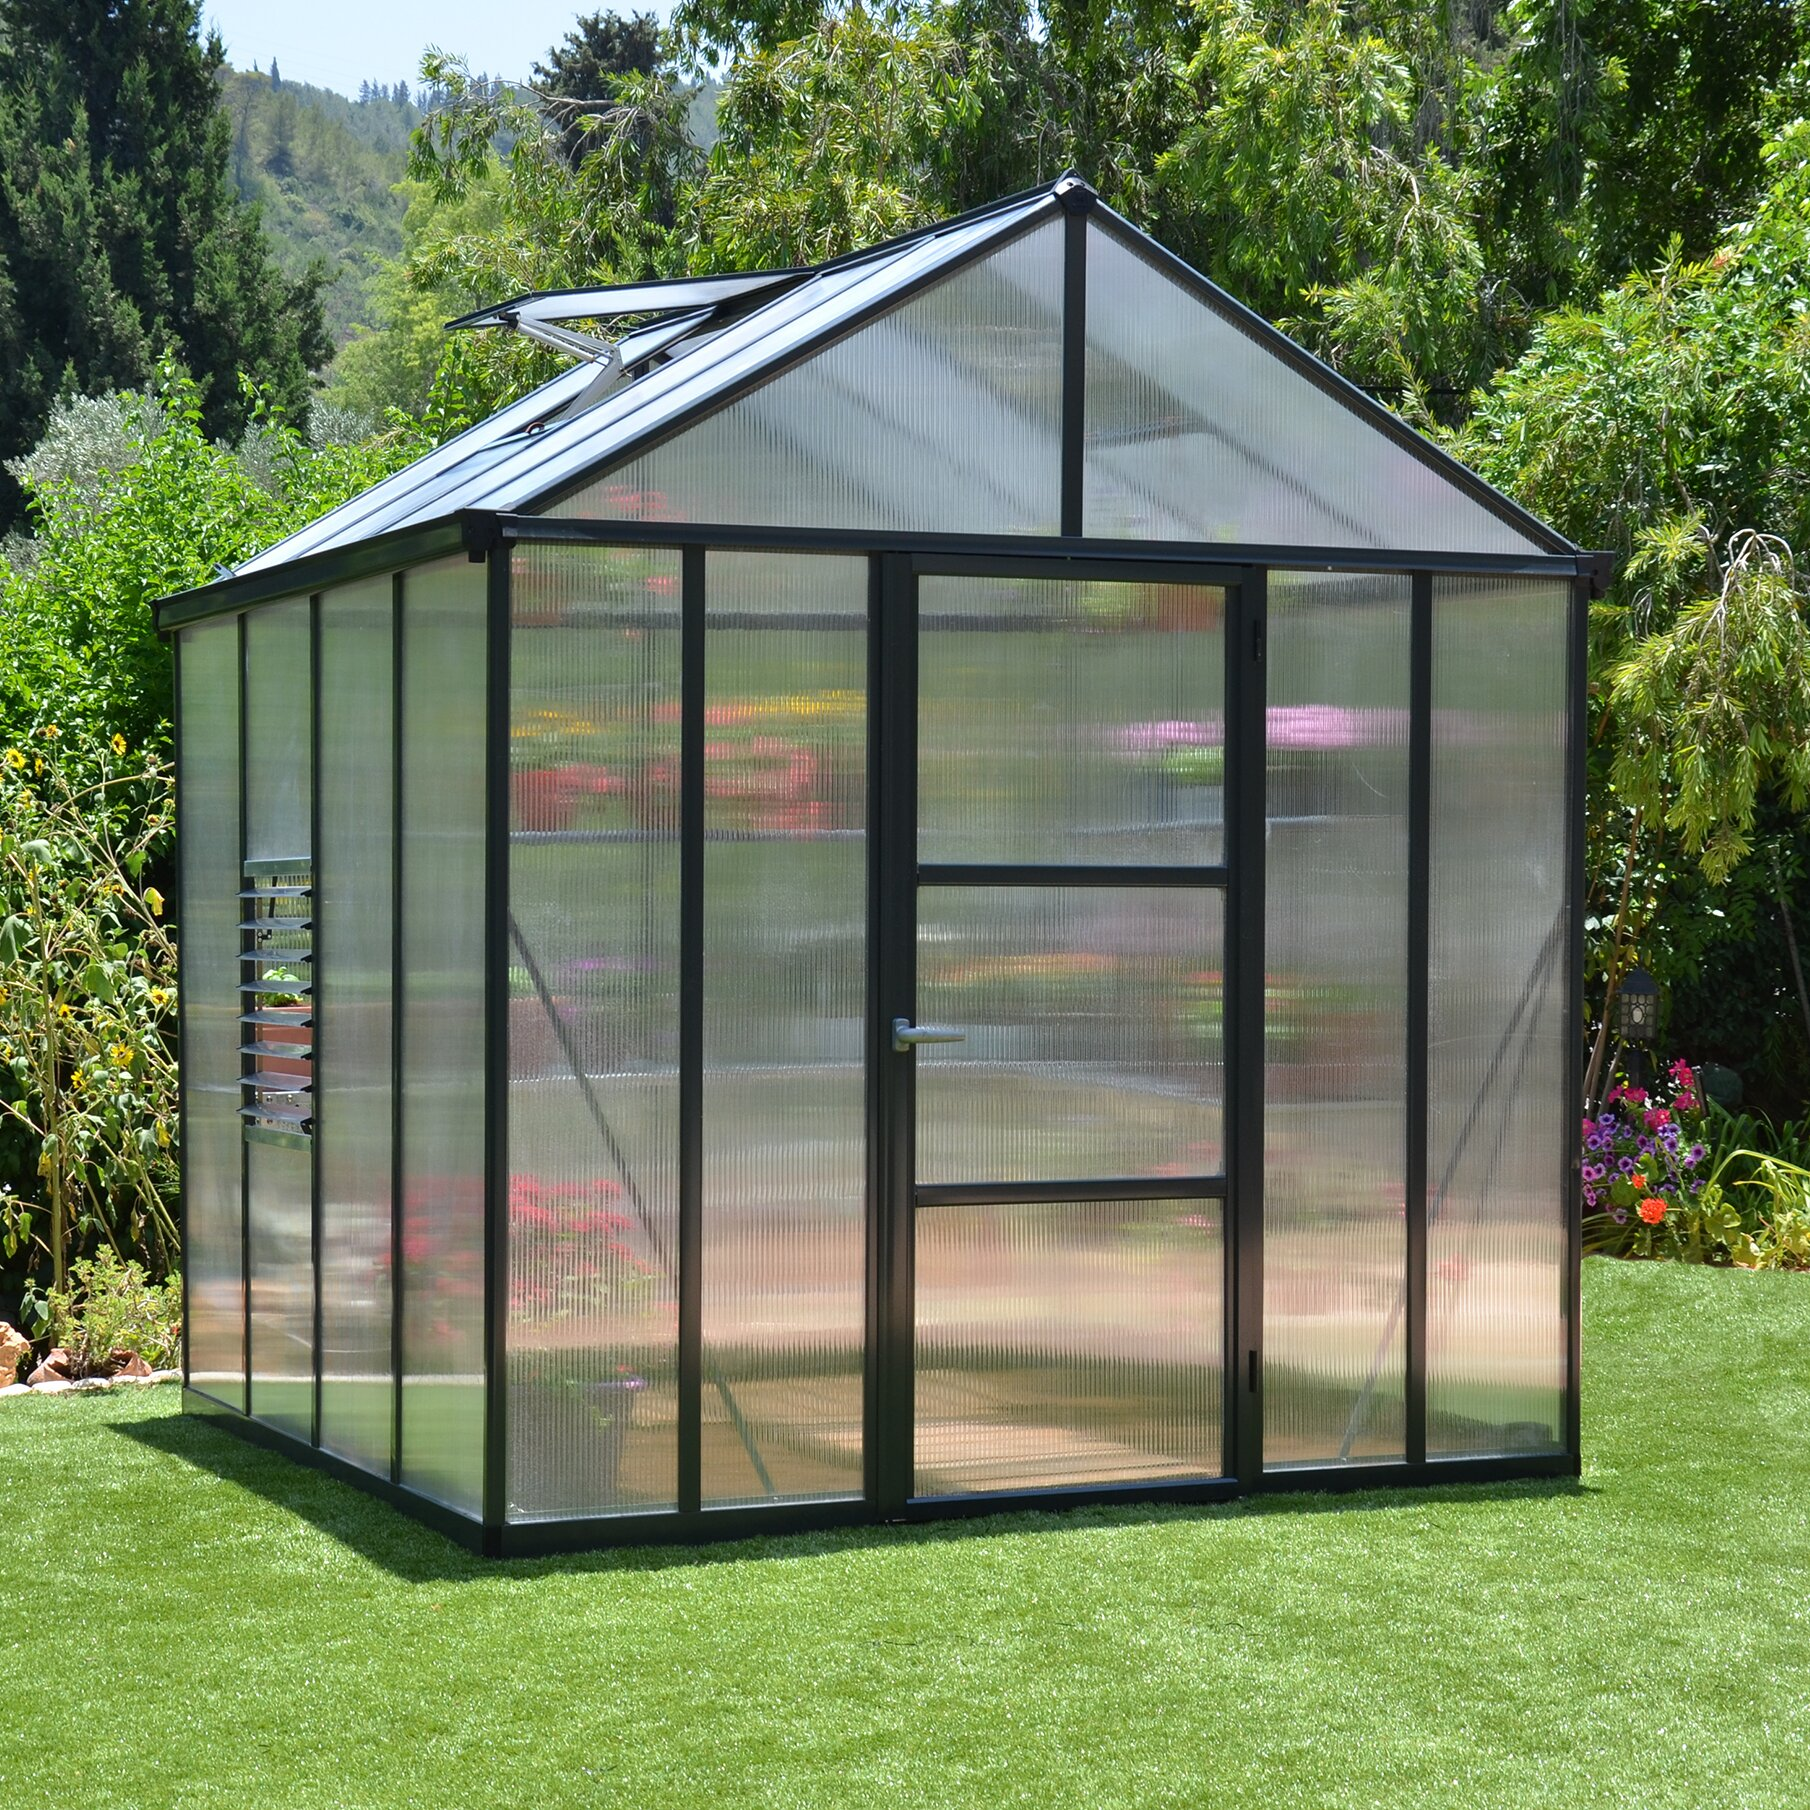 The greenhouse dallas tx - Glory 8 Ft W X 8 Ft D Greenhouse